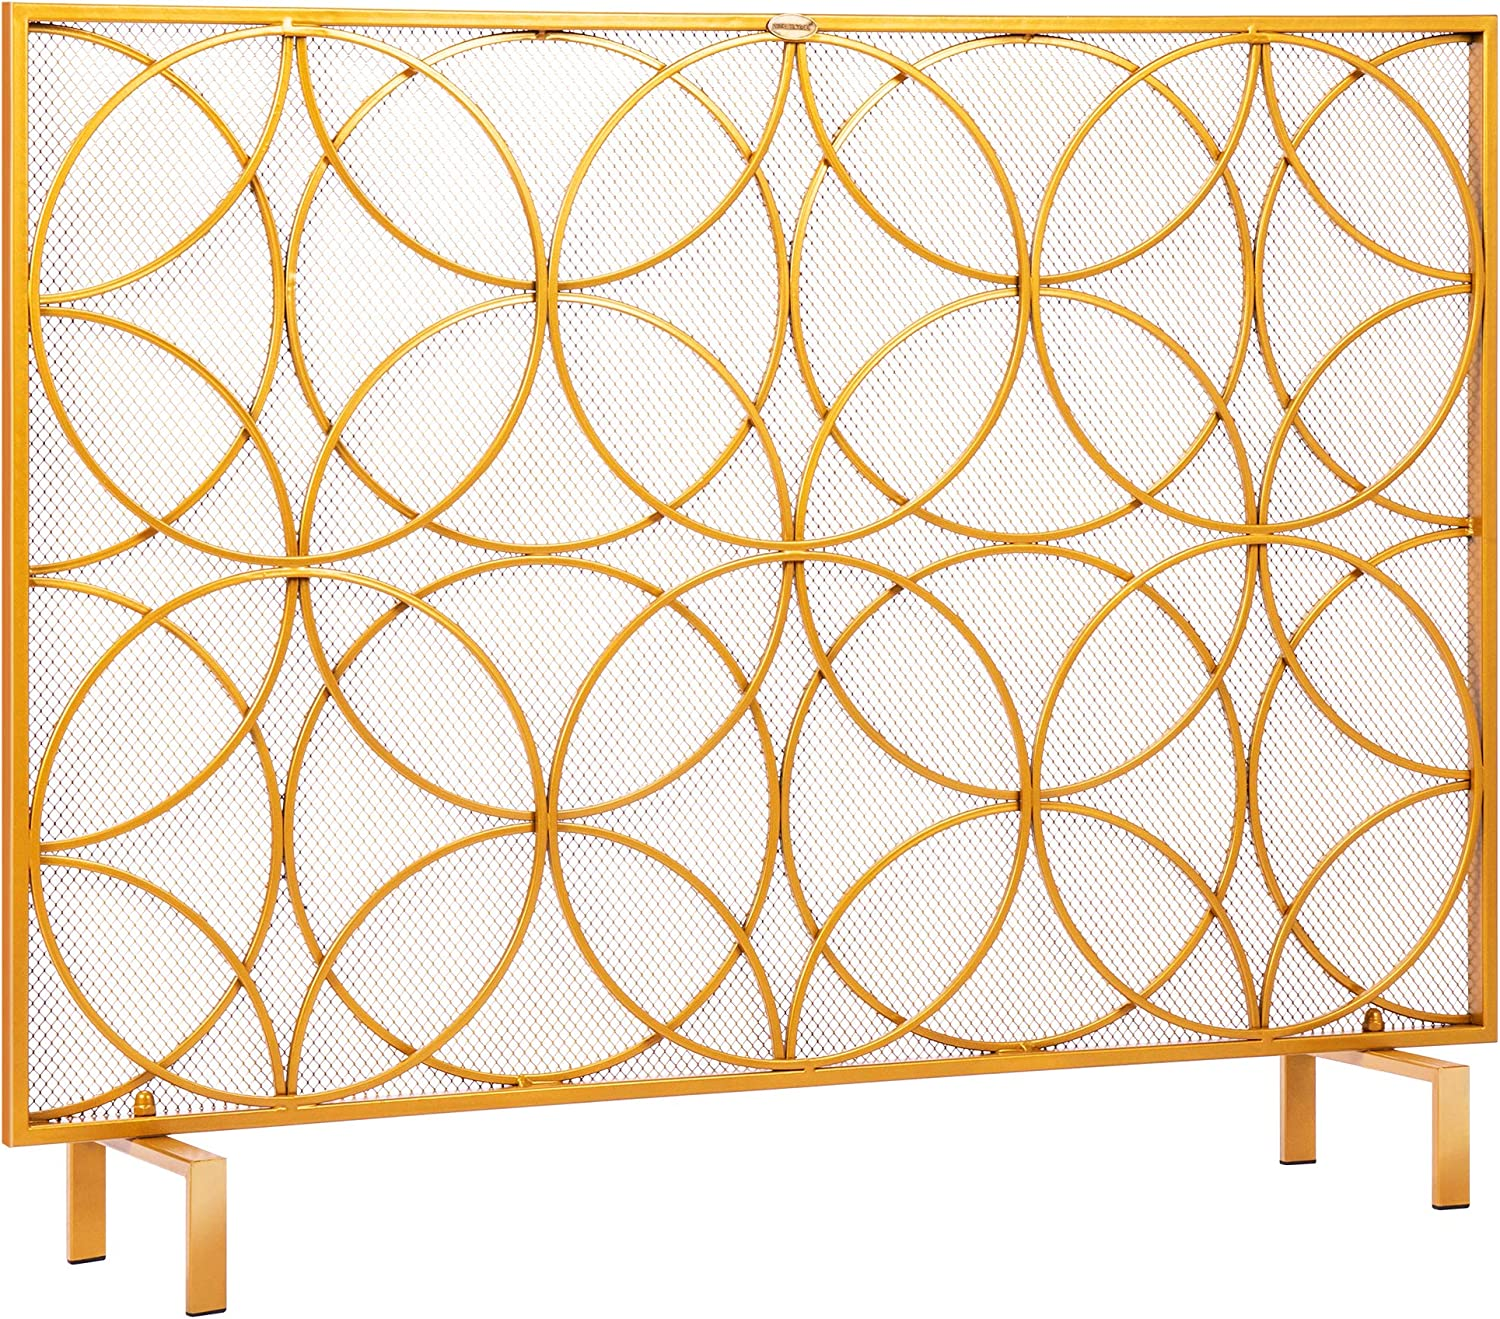 VIVOHOME 40.9 x 31.1 Inch Single Sc Iron Wrought Special sale item Fireplace Panel Max 41% OFF